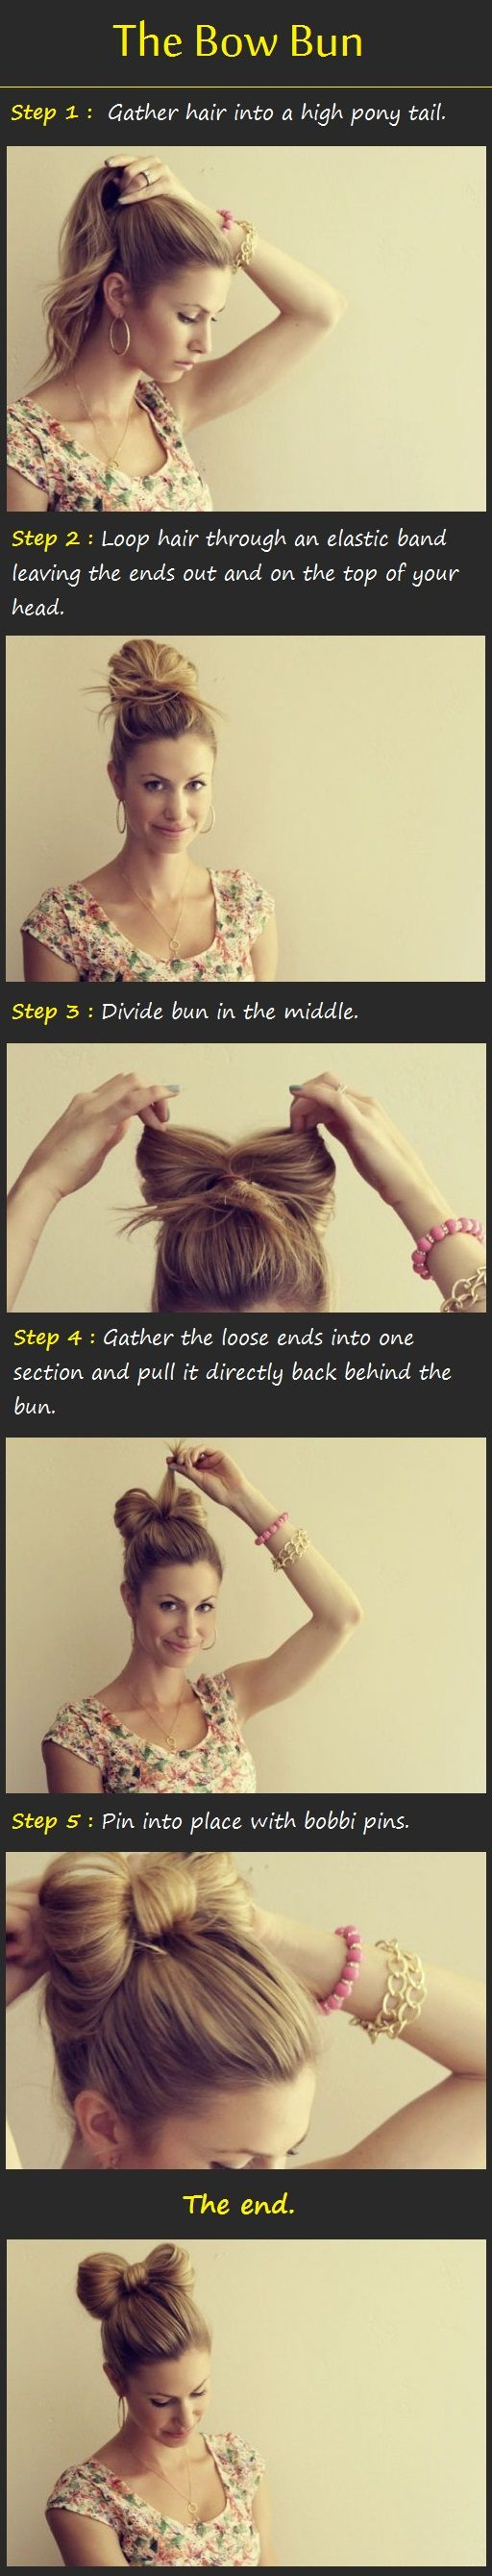 The Bow Bun Tutorial | Beauty Tutorials